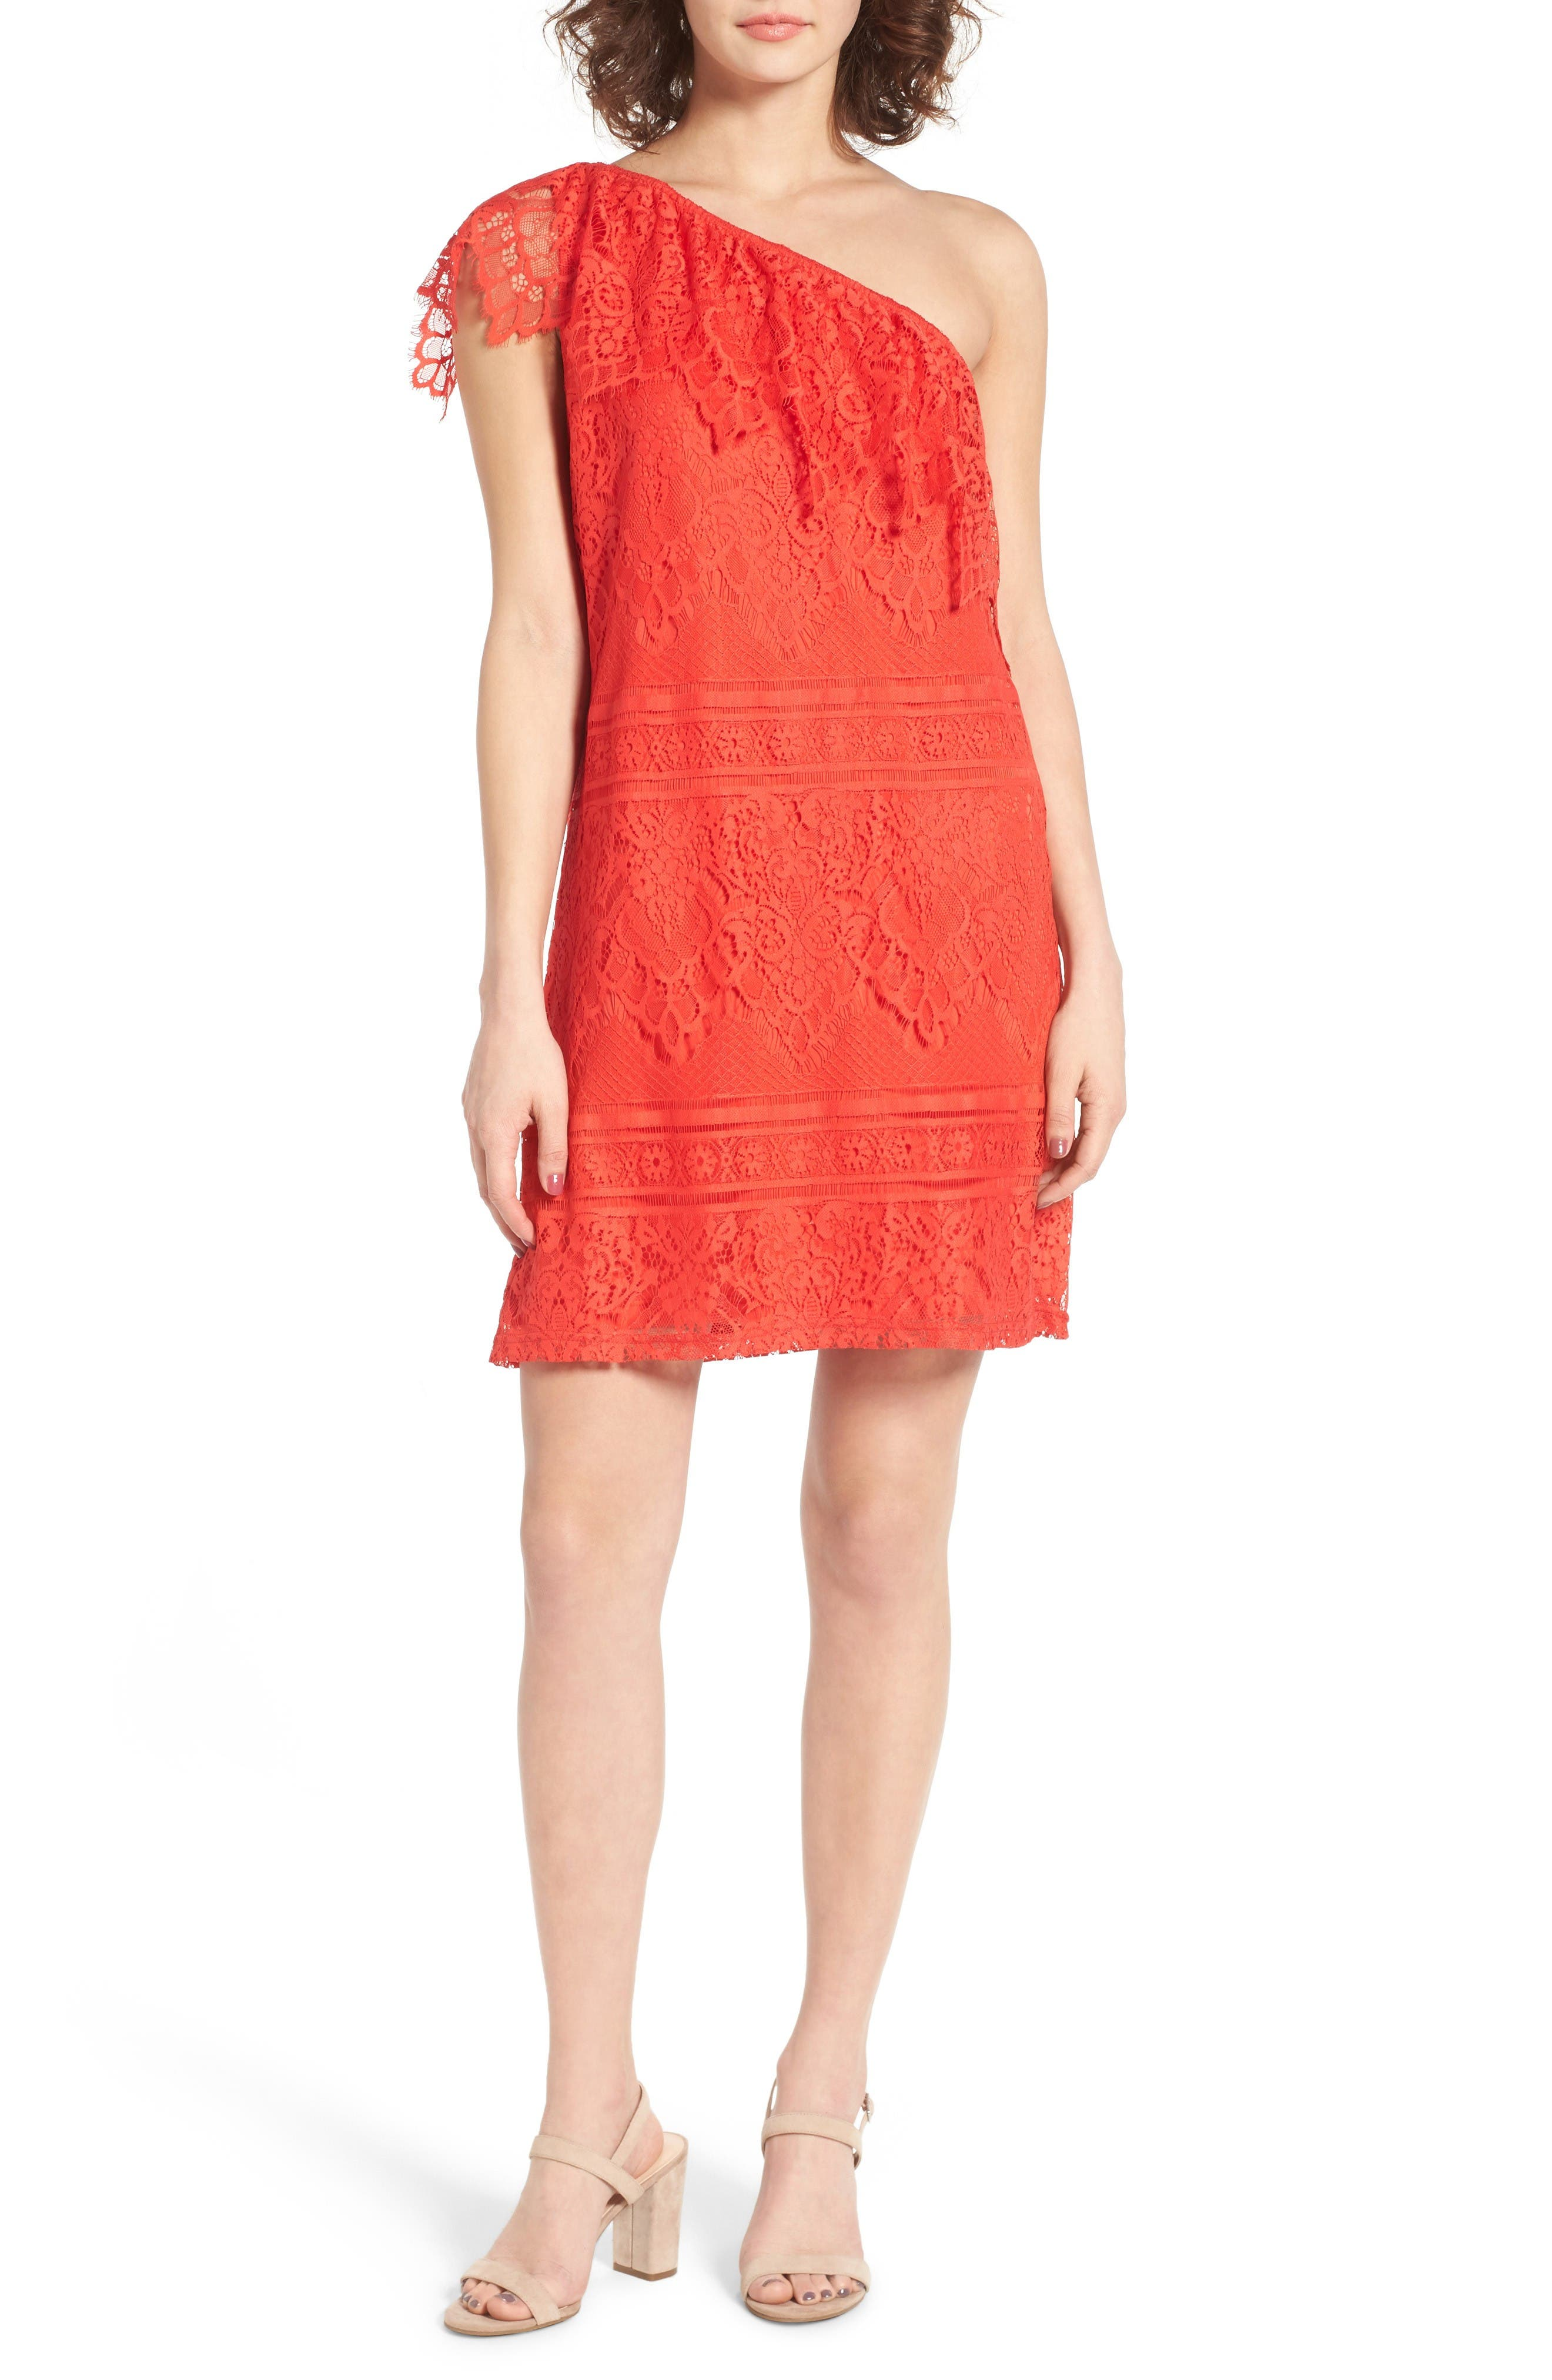 Alternate Image 1 Selected - Love, Fire Lace One-Shoulder Dress